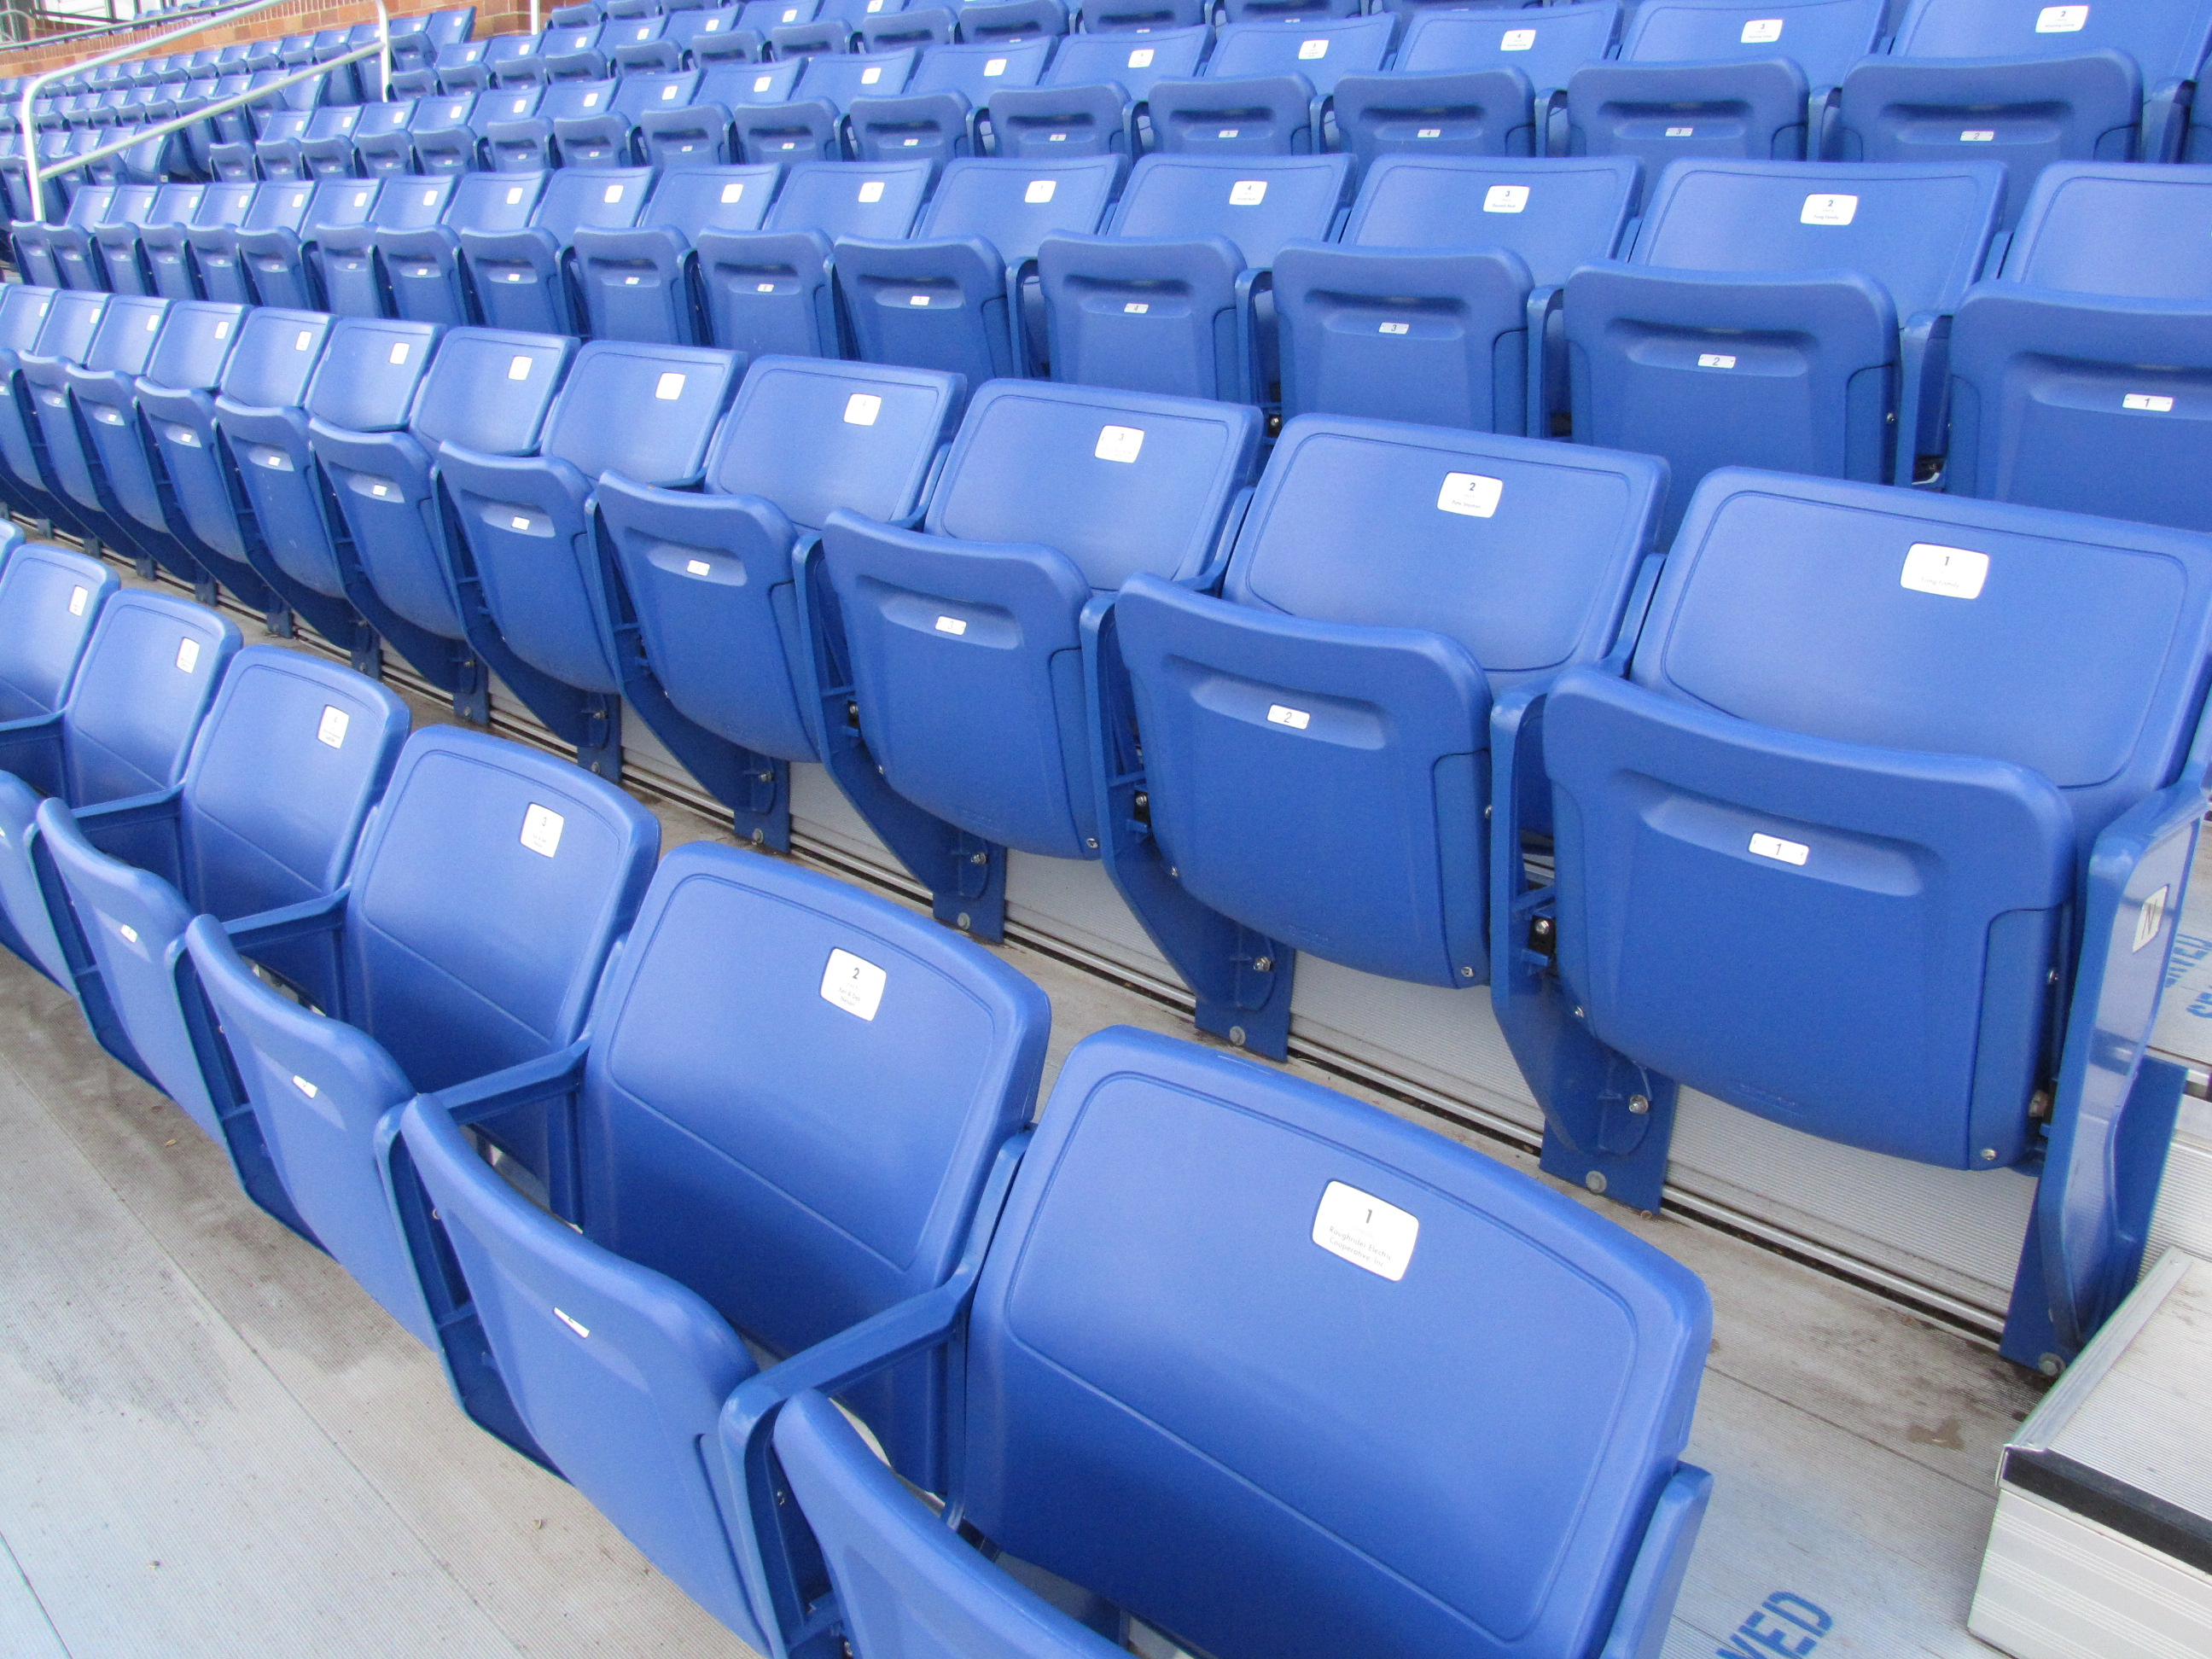 Stock photo of empty seats at an outdoor stadium.